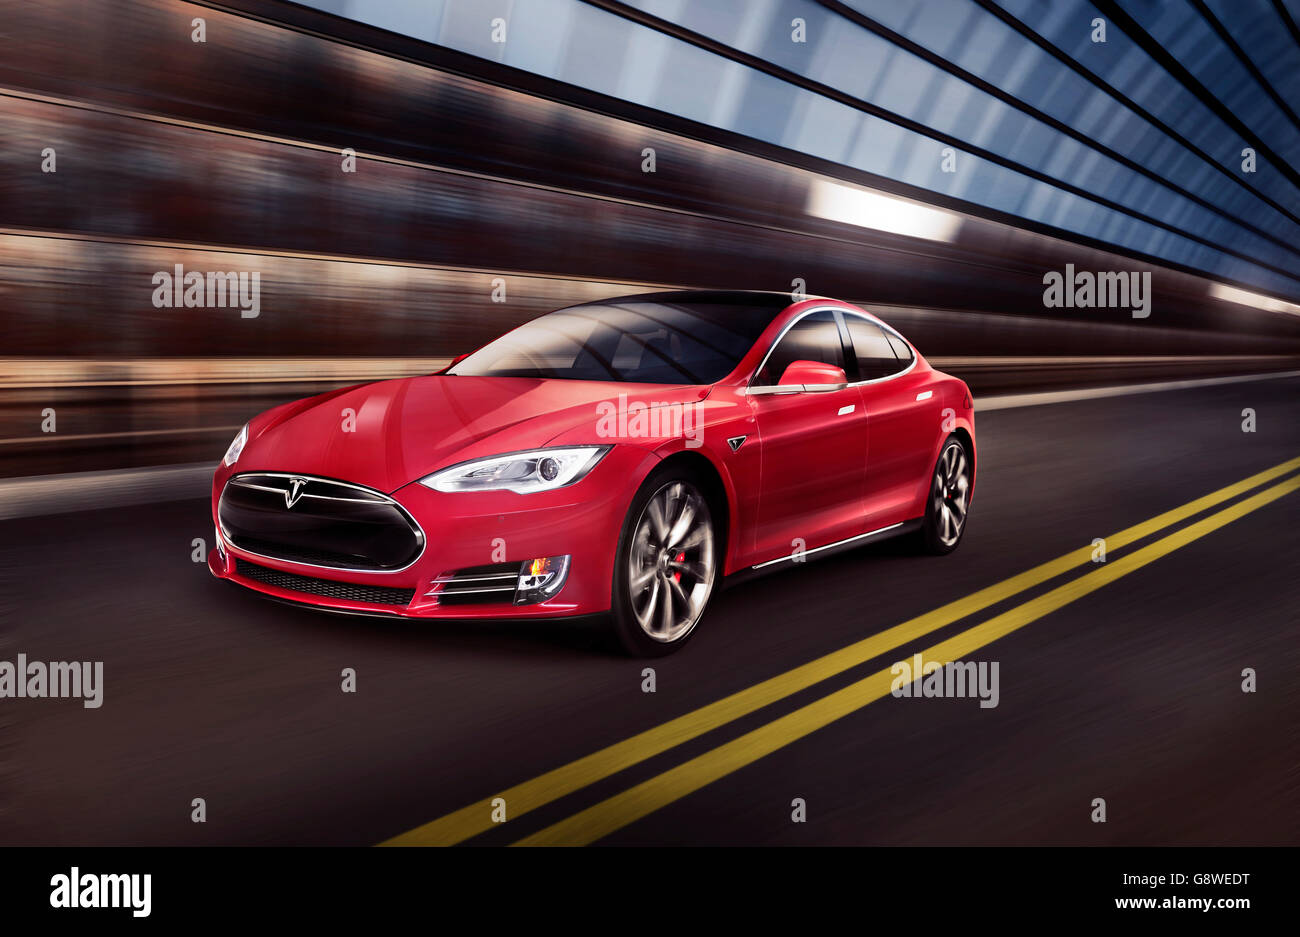 Red Tesla Model S luxury electric car speeding along a metal industrial tunnel - Stock Image